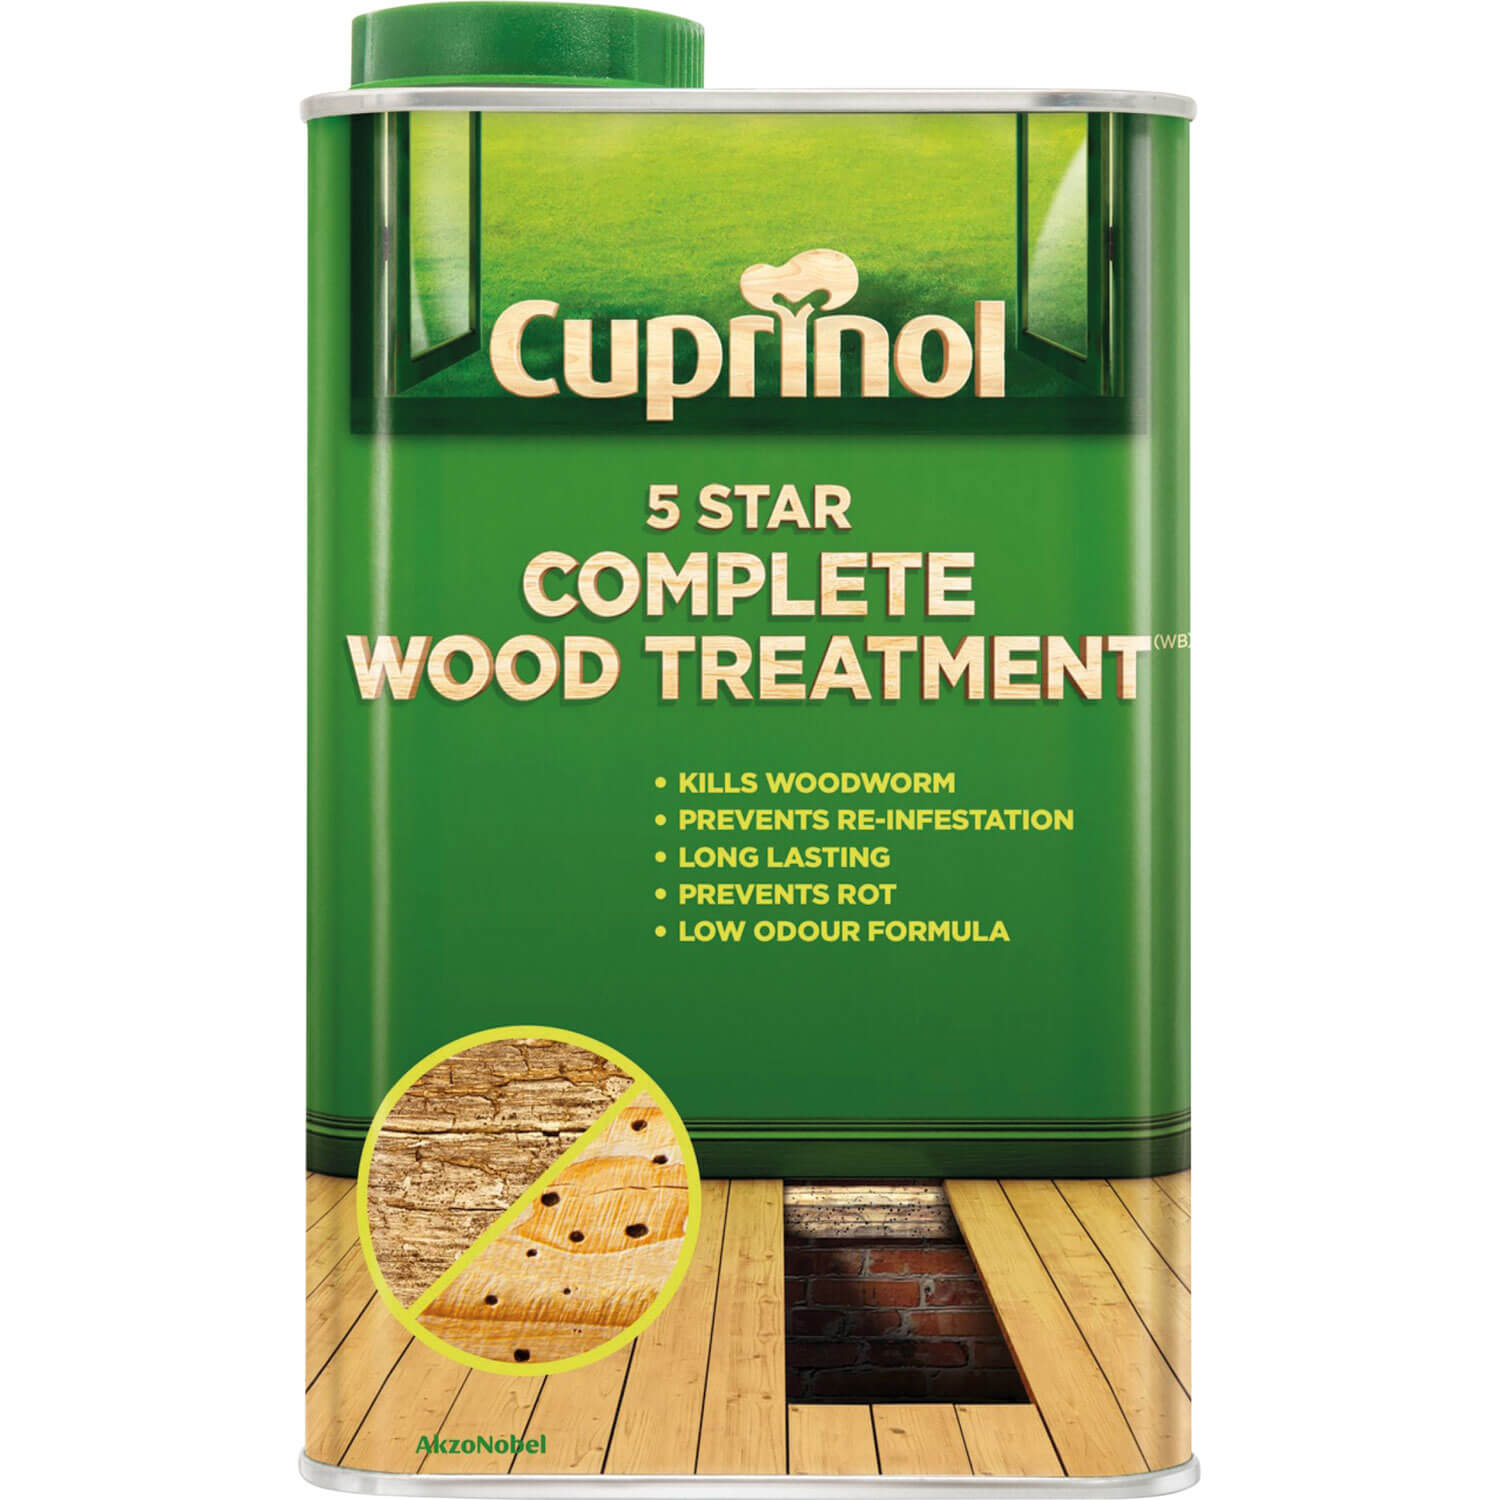 Cuprinol 5 Star Complete Wood Treatment for Interior Use 1L